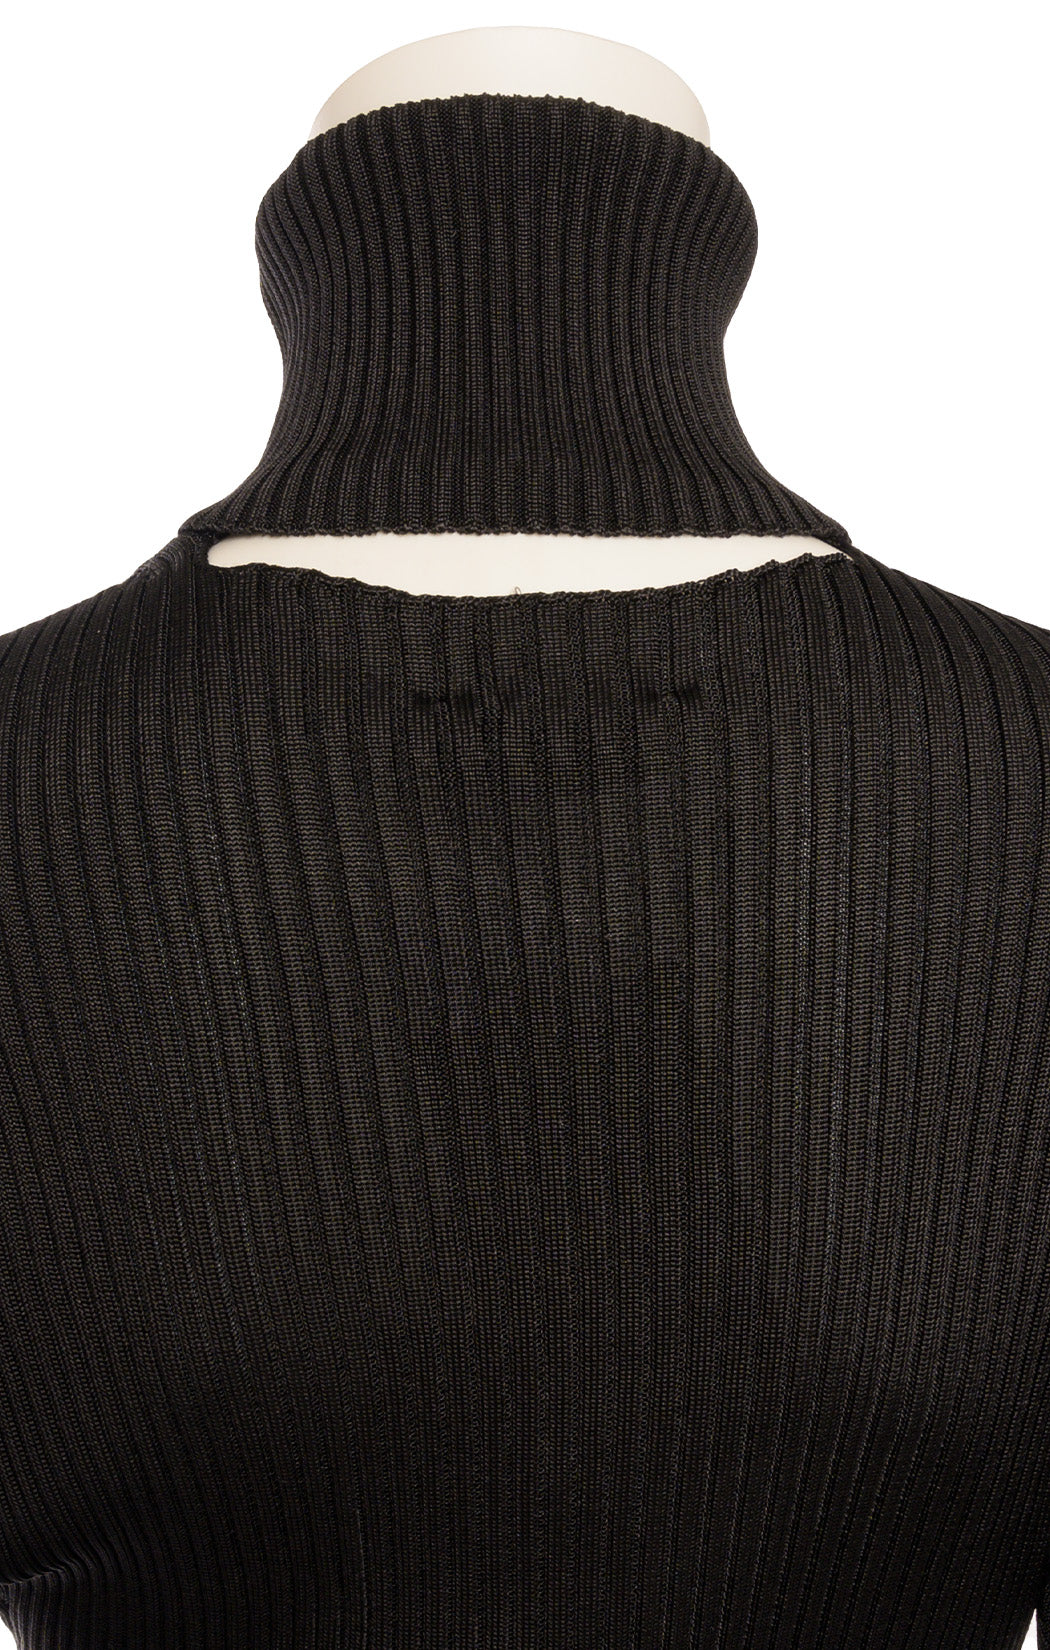 Cloesup view of BOTTEGA VENETA with tags Sweater Size: IT 42 (comparable to US 6)